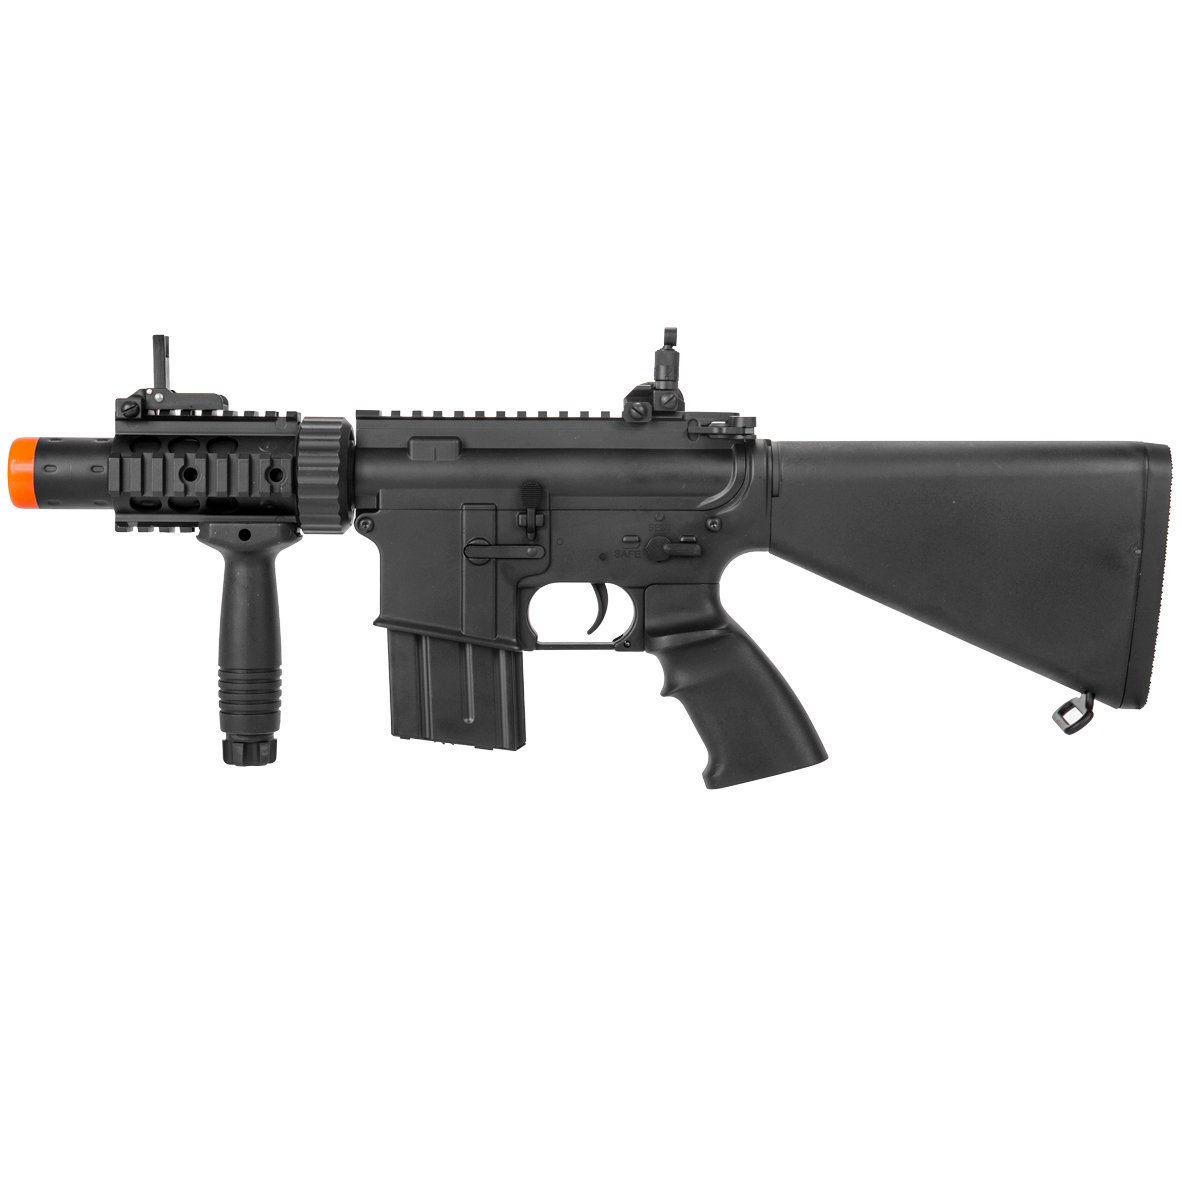 MetalTac Electric Airsoft Gun M4 CQB 02 A&K with Full Metal Body, Metal Gearbox Version 2, Full Auto AEG, Upgraded Powerful Spring 380 Fps with .20g BBs